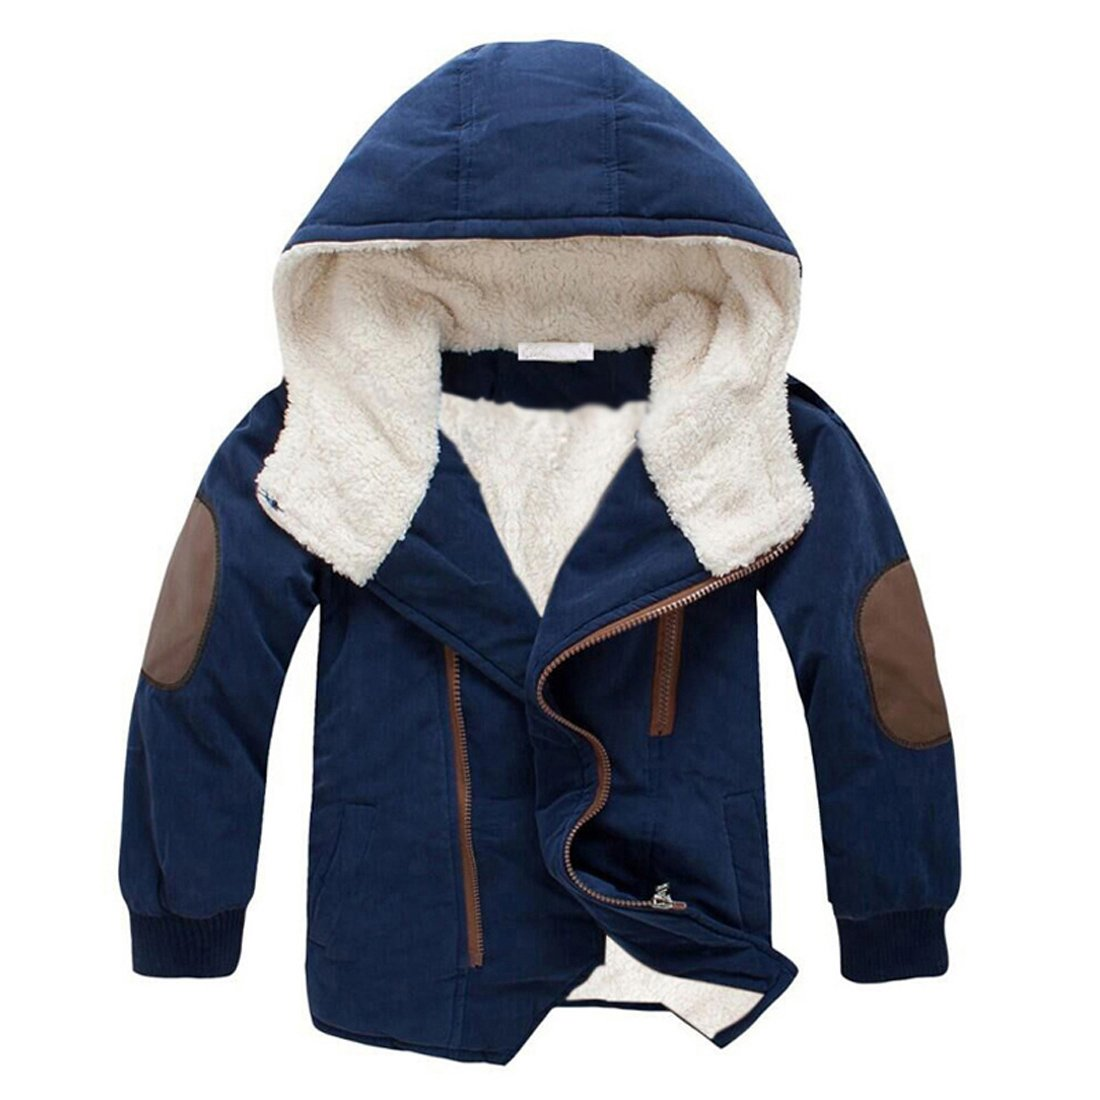 Gaorui Boys Winter Hooded Down Coat Jacket Thick Wool Inside Kids Warm Faux Fur Outerwear Coat